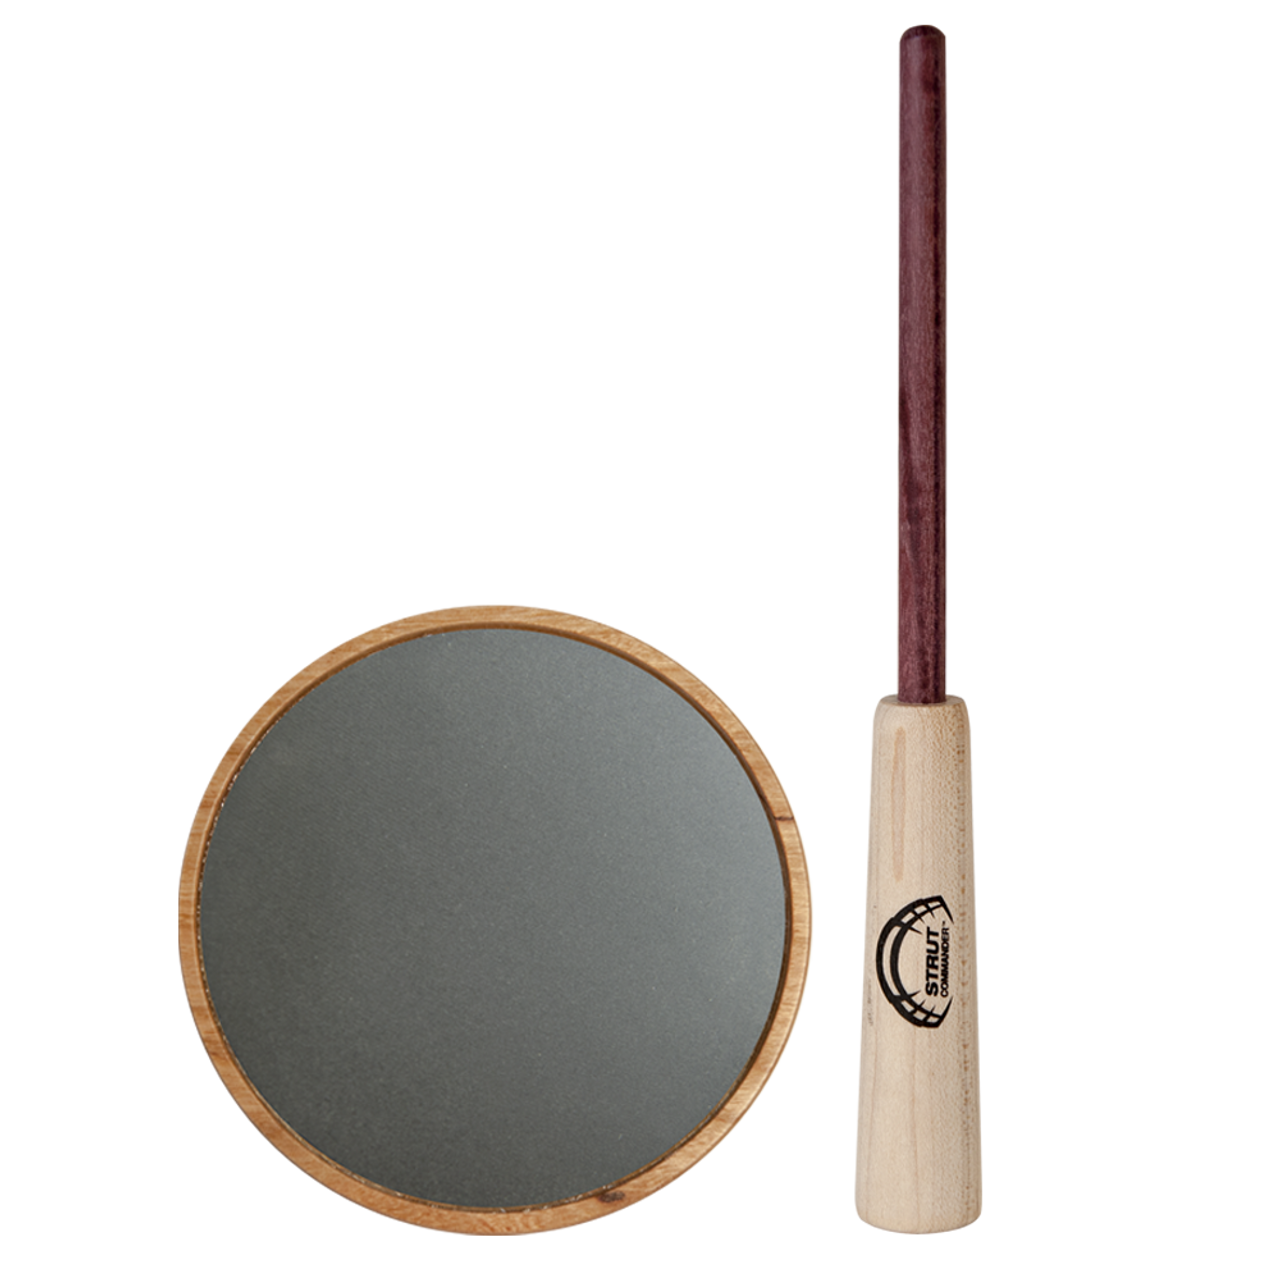 The Ole Scratch Strut Commander pot call features a hand-turned cherry wood pot, a slate surface capable of producing a more mellow, raspy variety of yelps, clucks, cutts, and purrs, and a 2-piece purple heart wood striker.